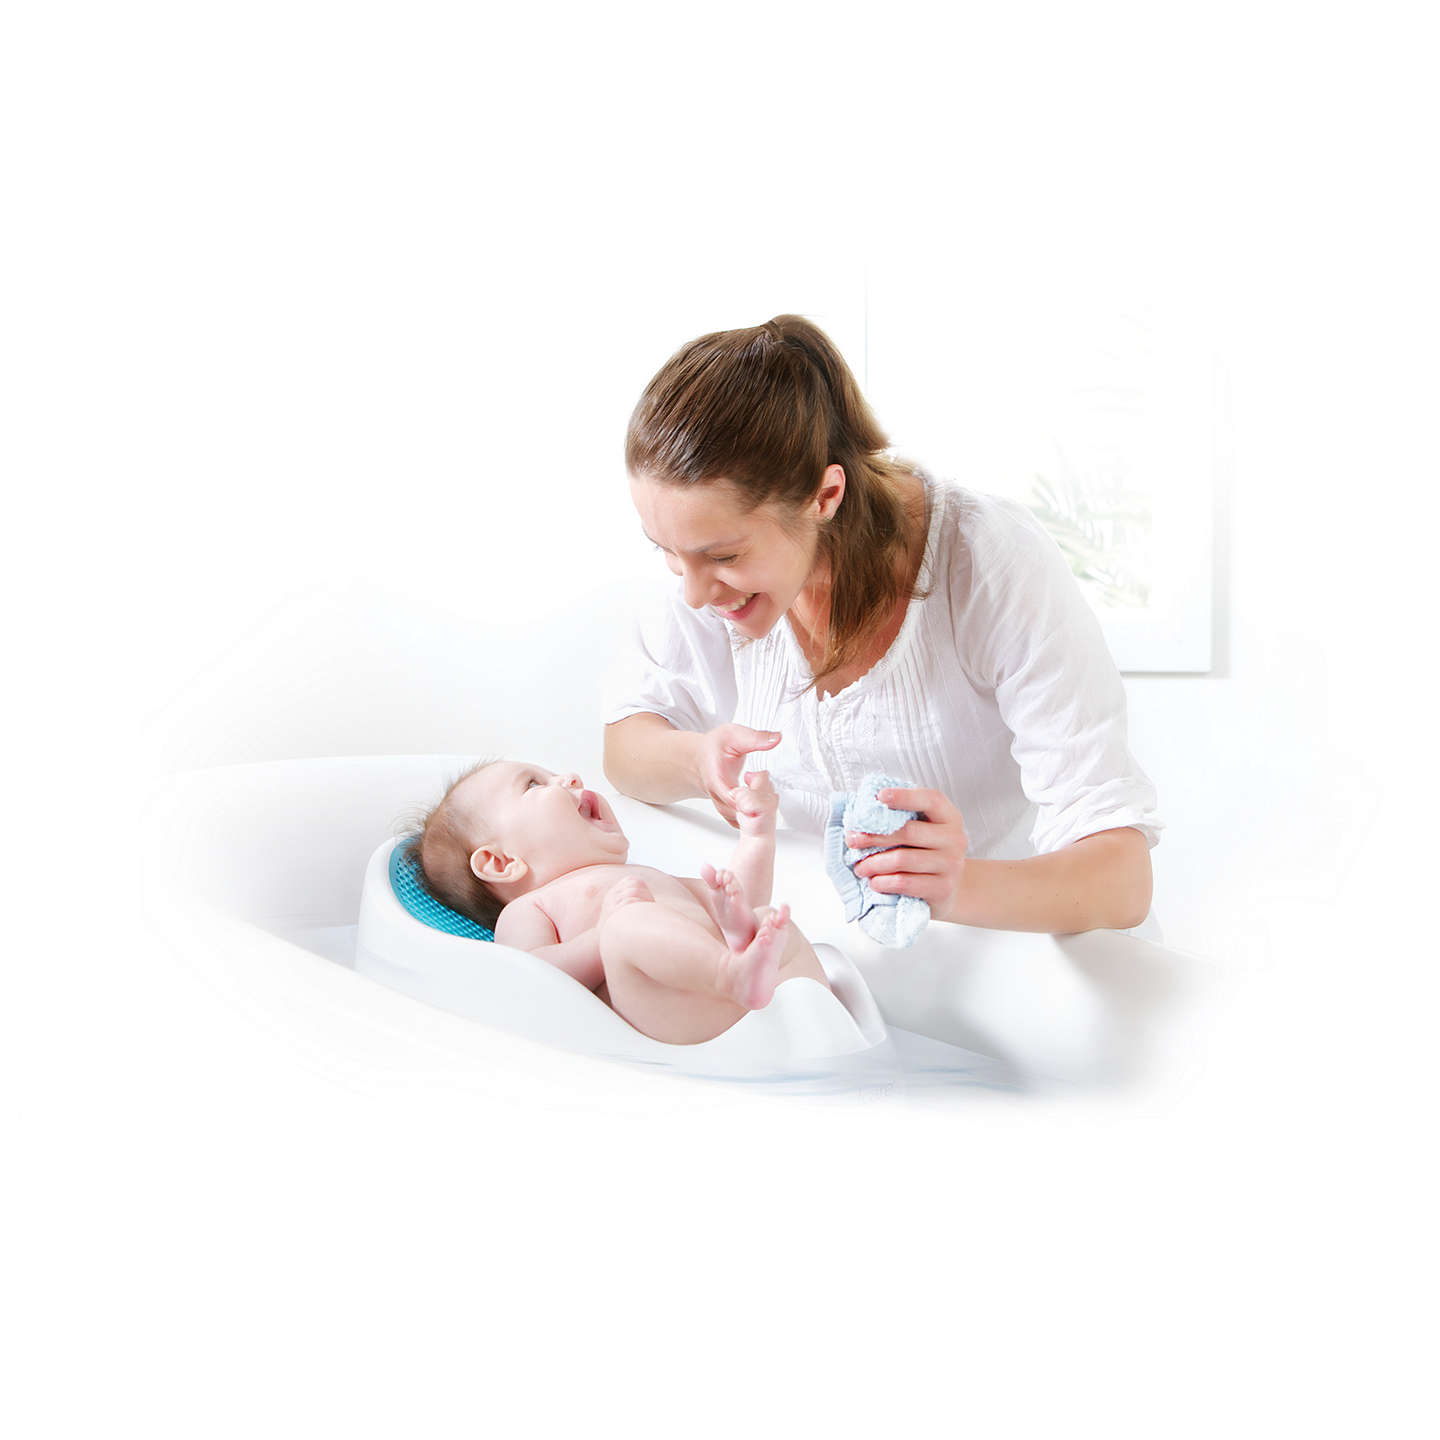 BuyAngelcare Soft Baby Bath Support, Blue Online at johnlewis.com